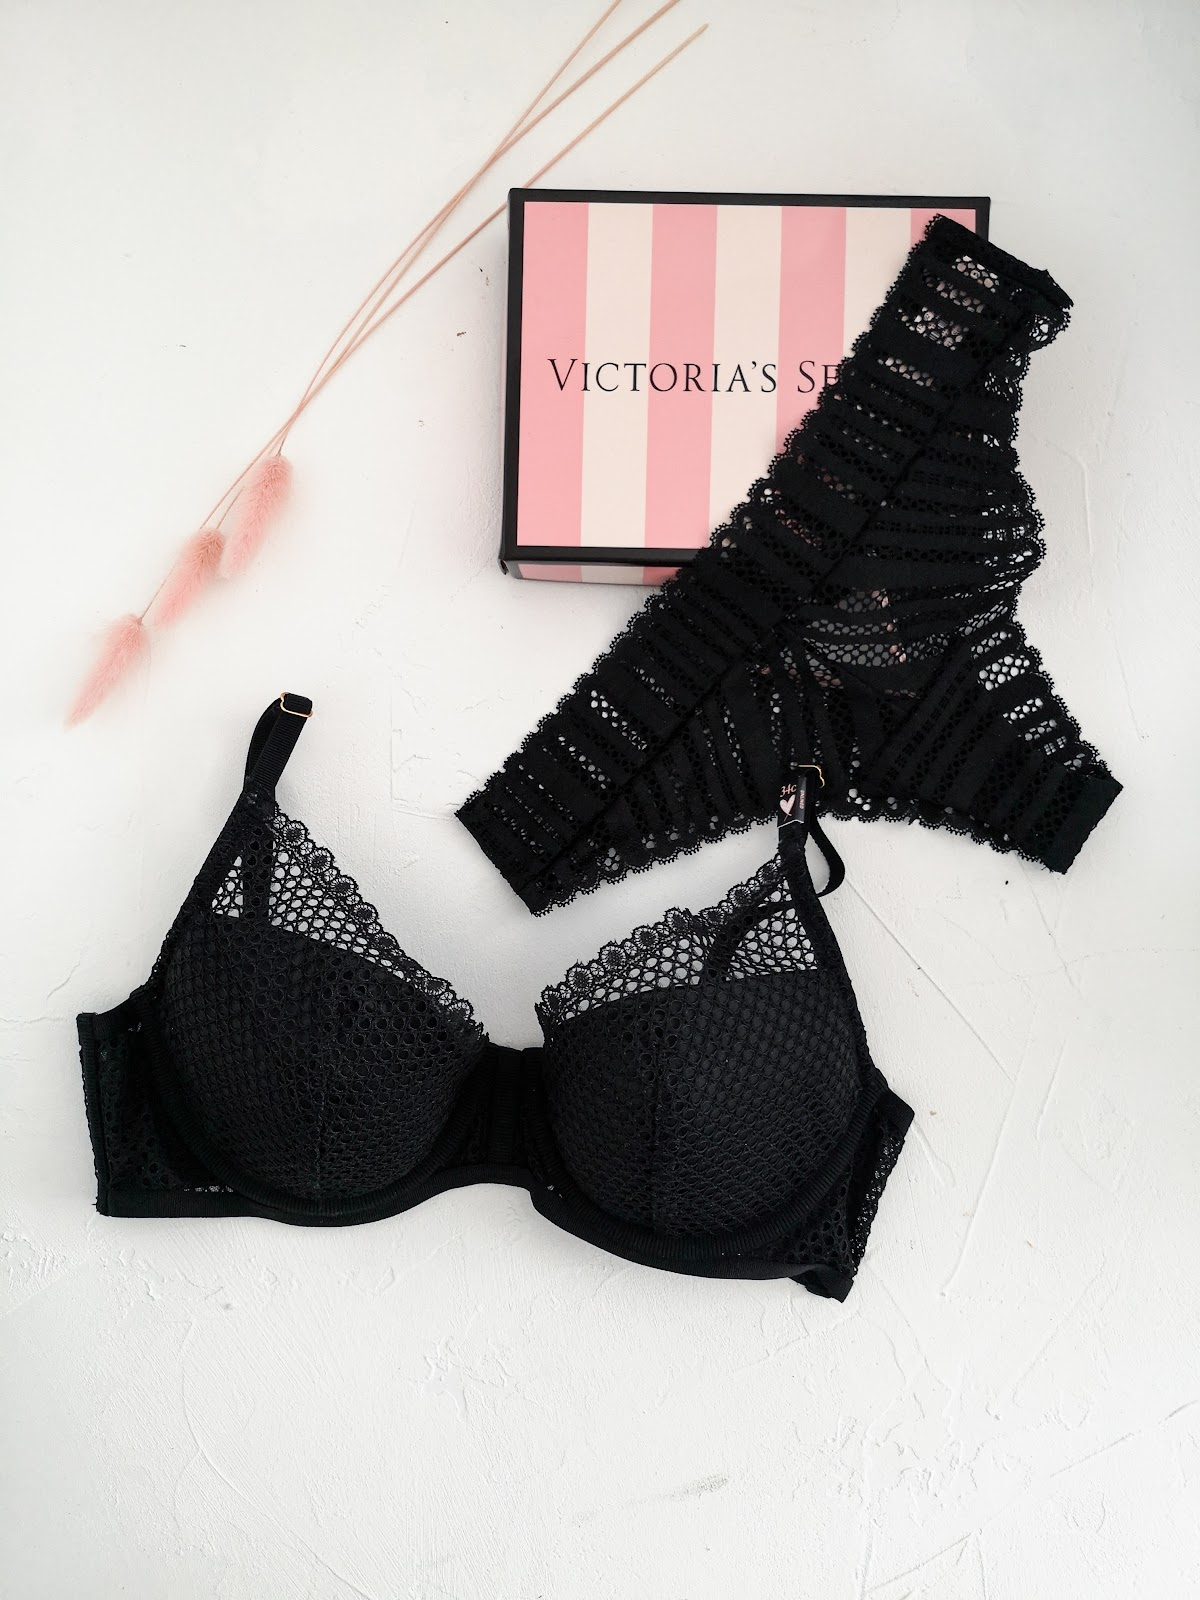 lingerie helps to empower women